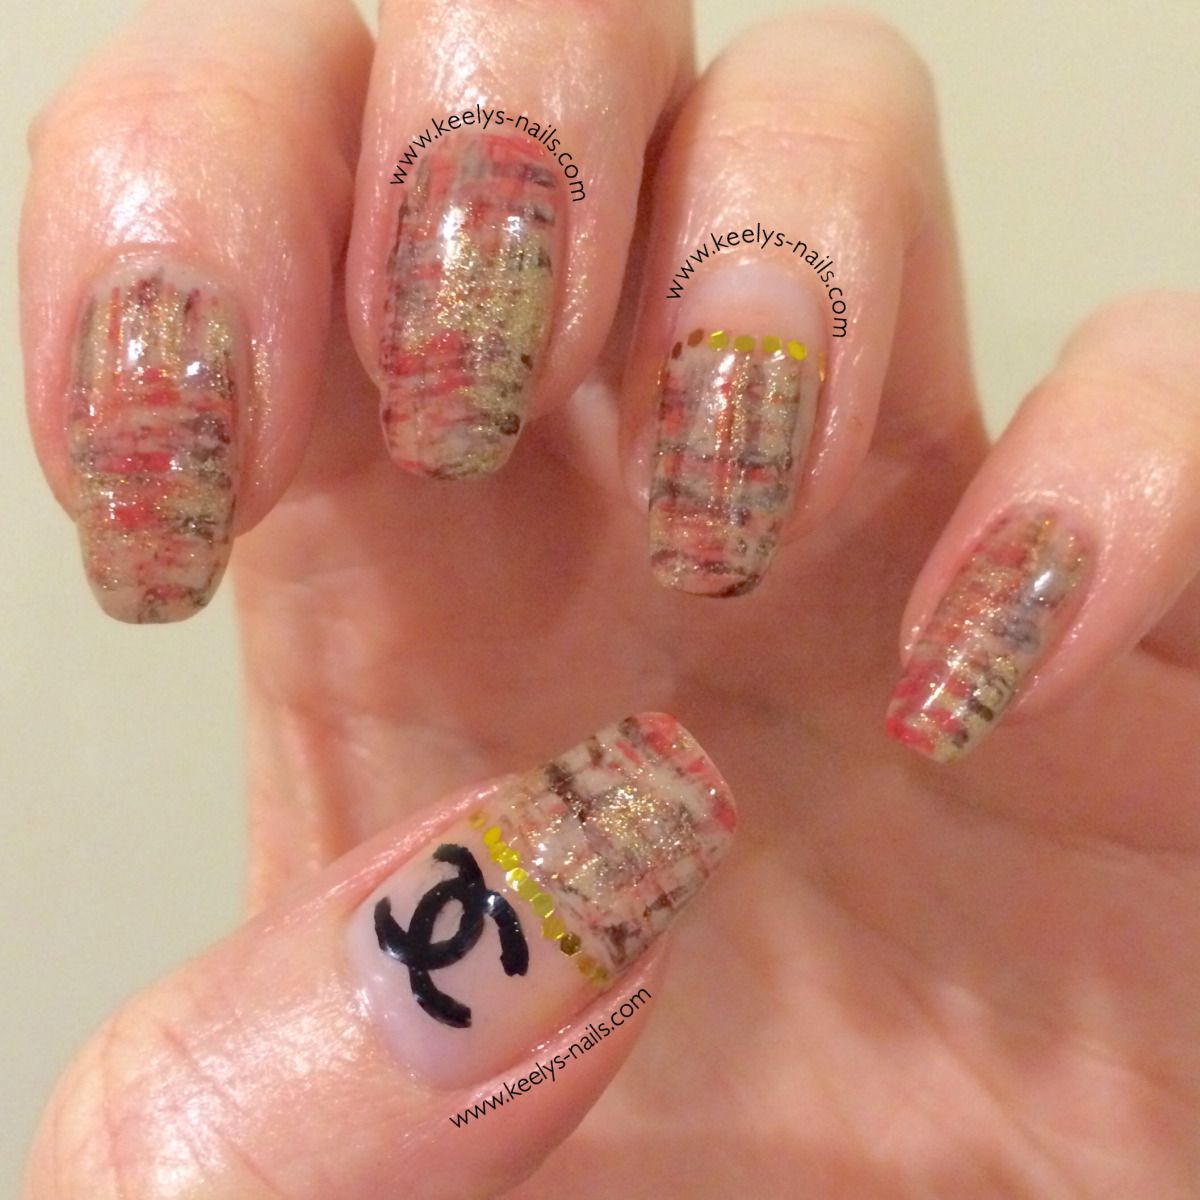 Expensive Taste | Expensive taste, Fan brush and Chanel nails